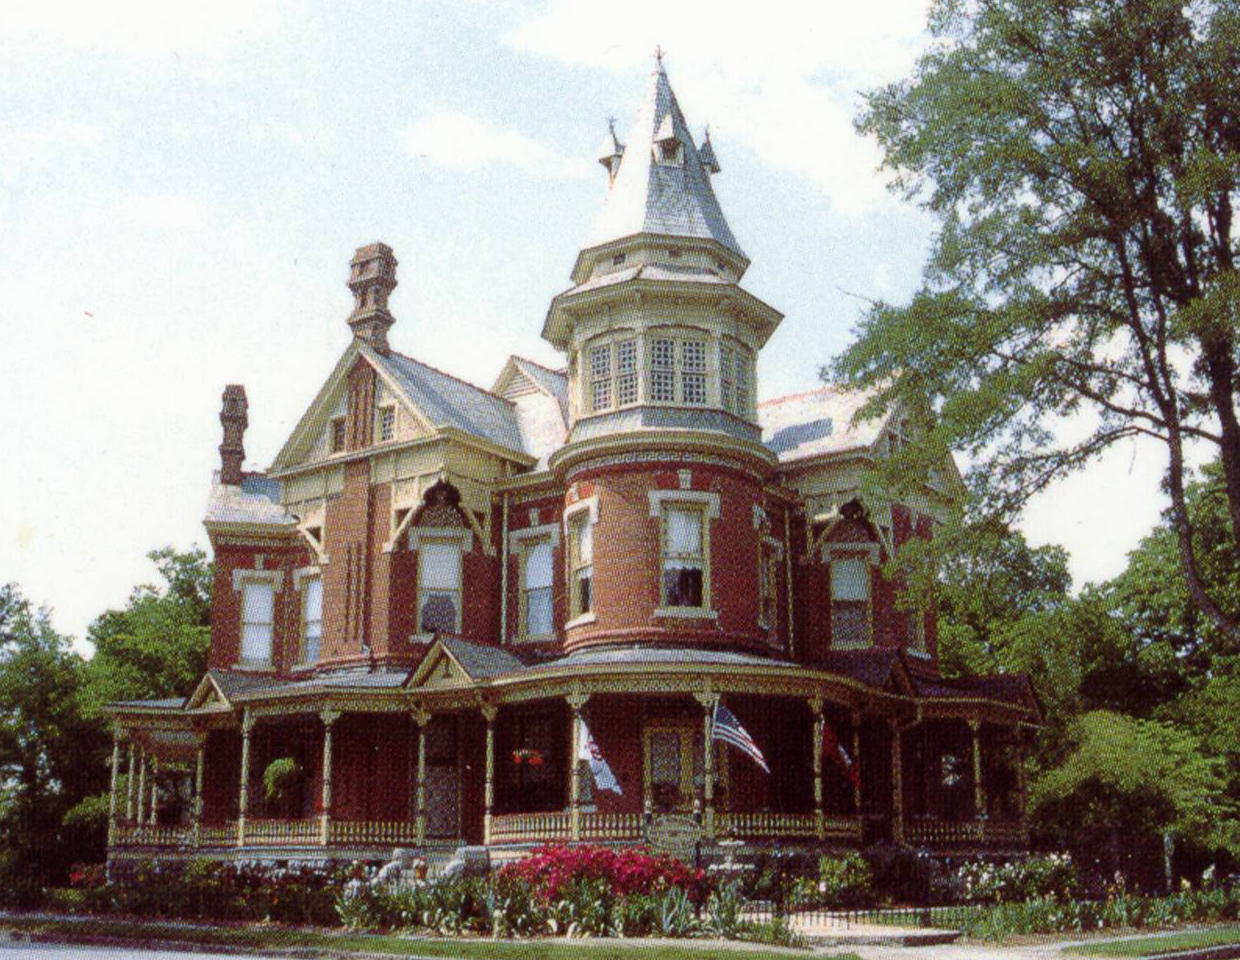 Empress Bed And Breakfast Little Rock Arkansas